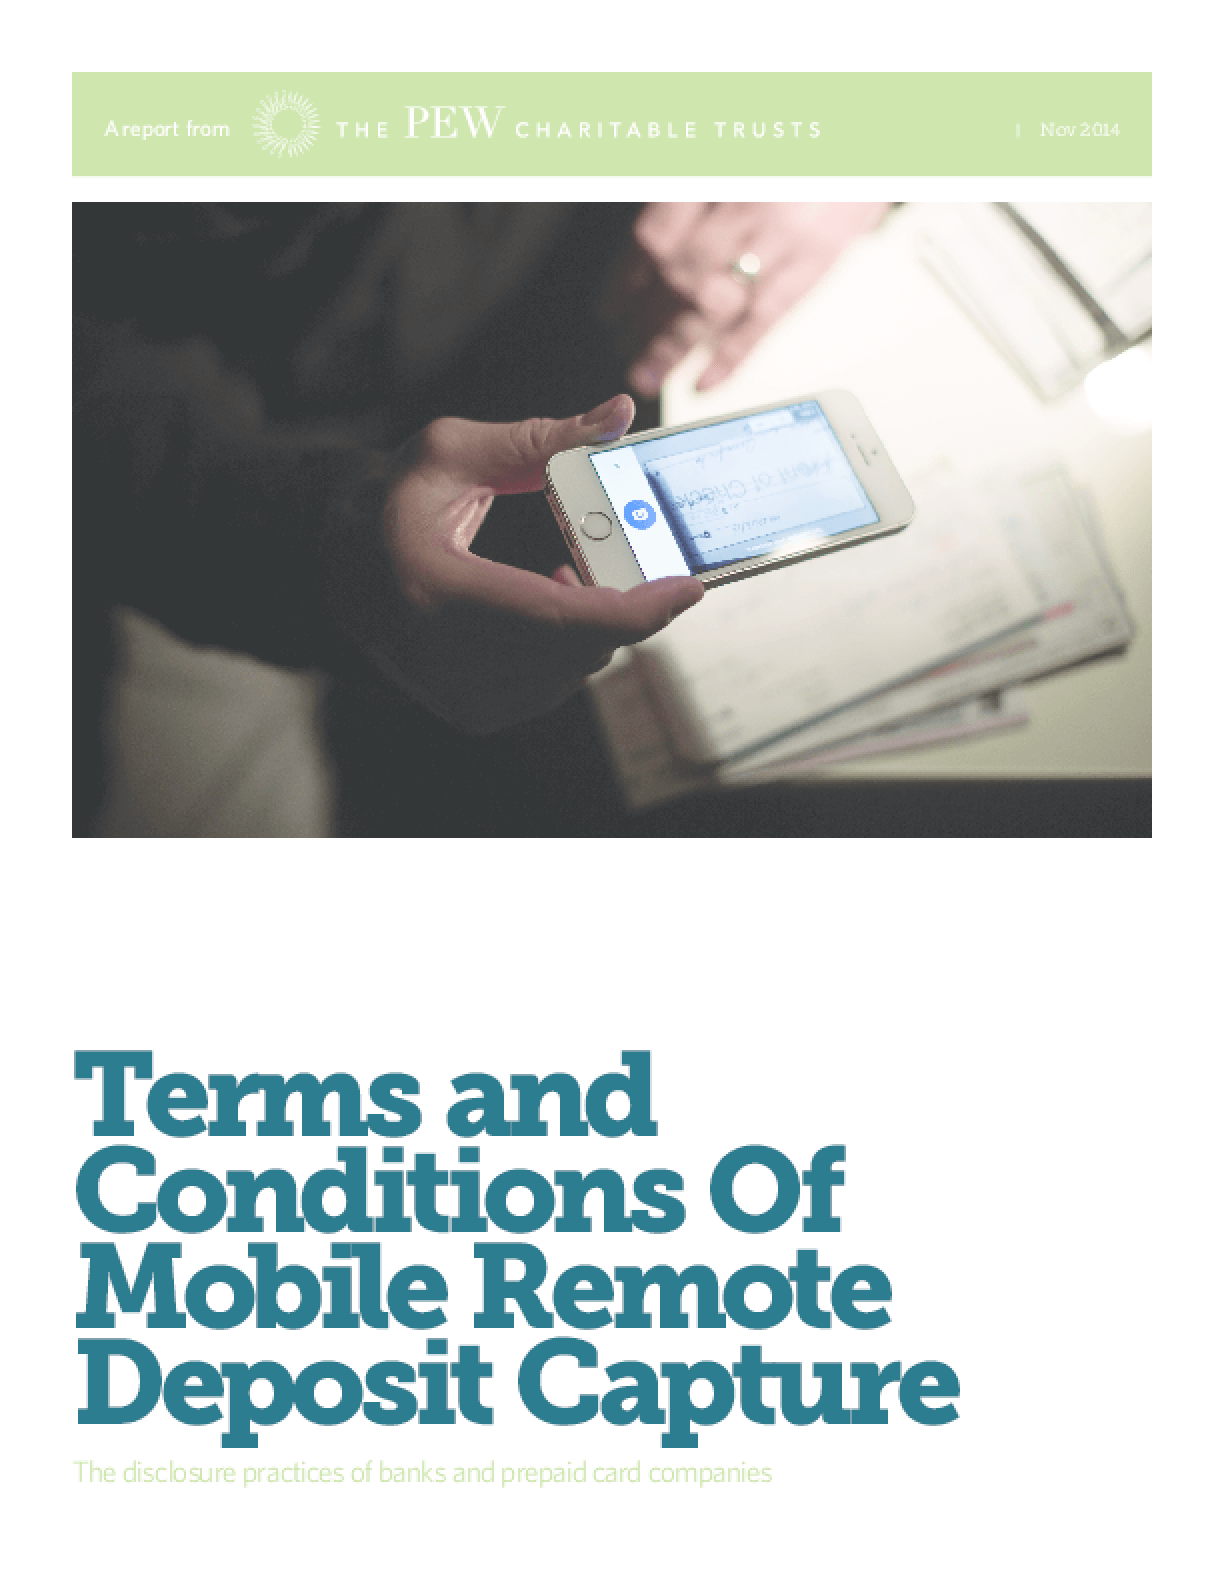 Terms and Conditions of Mobile Remote Deposit Capture: The Disclosure Practices of Banks and Prepaid Card Companies